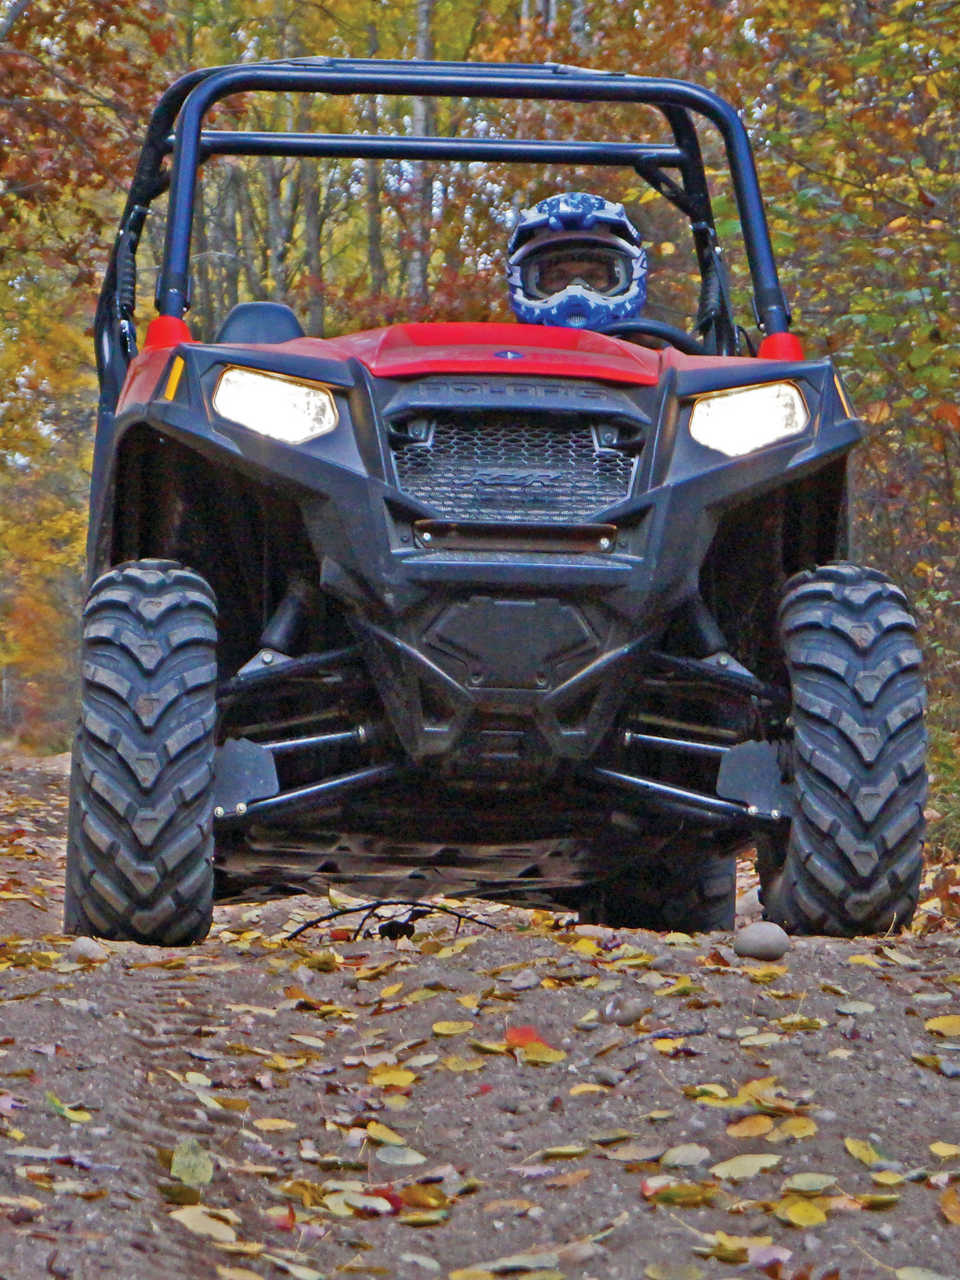 Long Term Report - The Polaris RZR 570 | ATV Illustrated